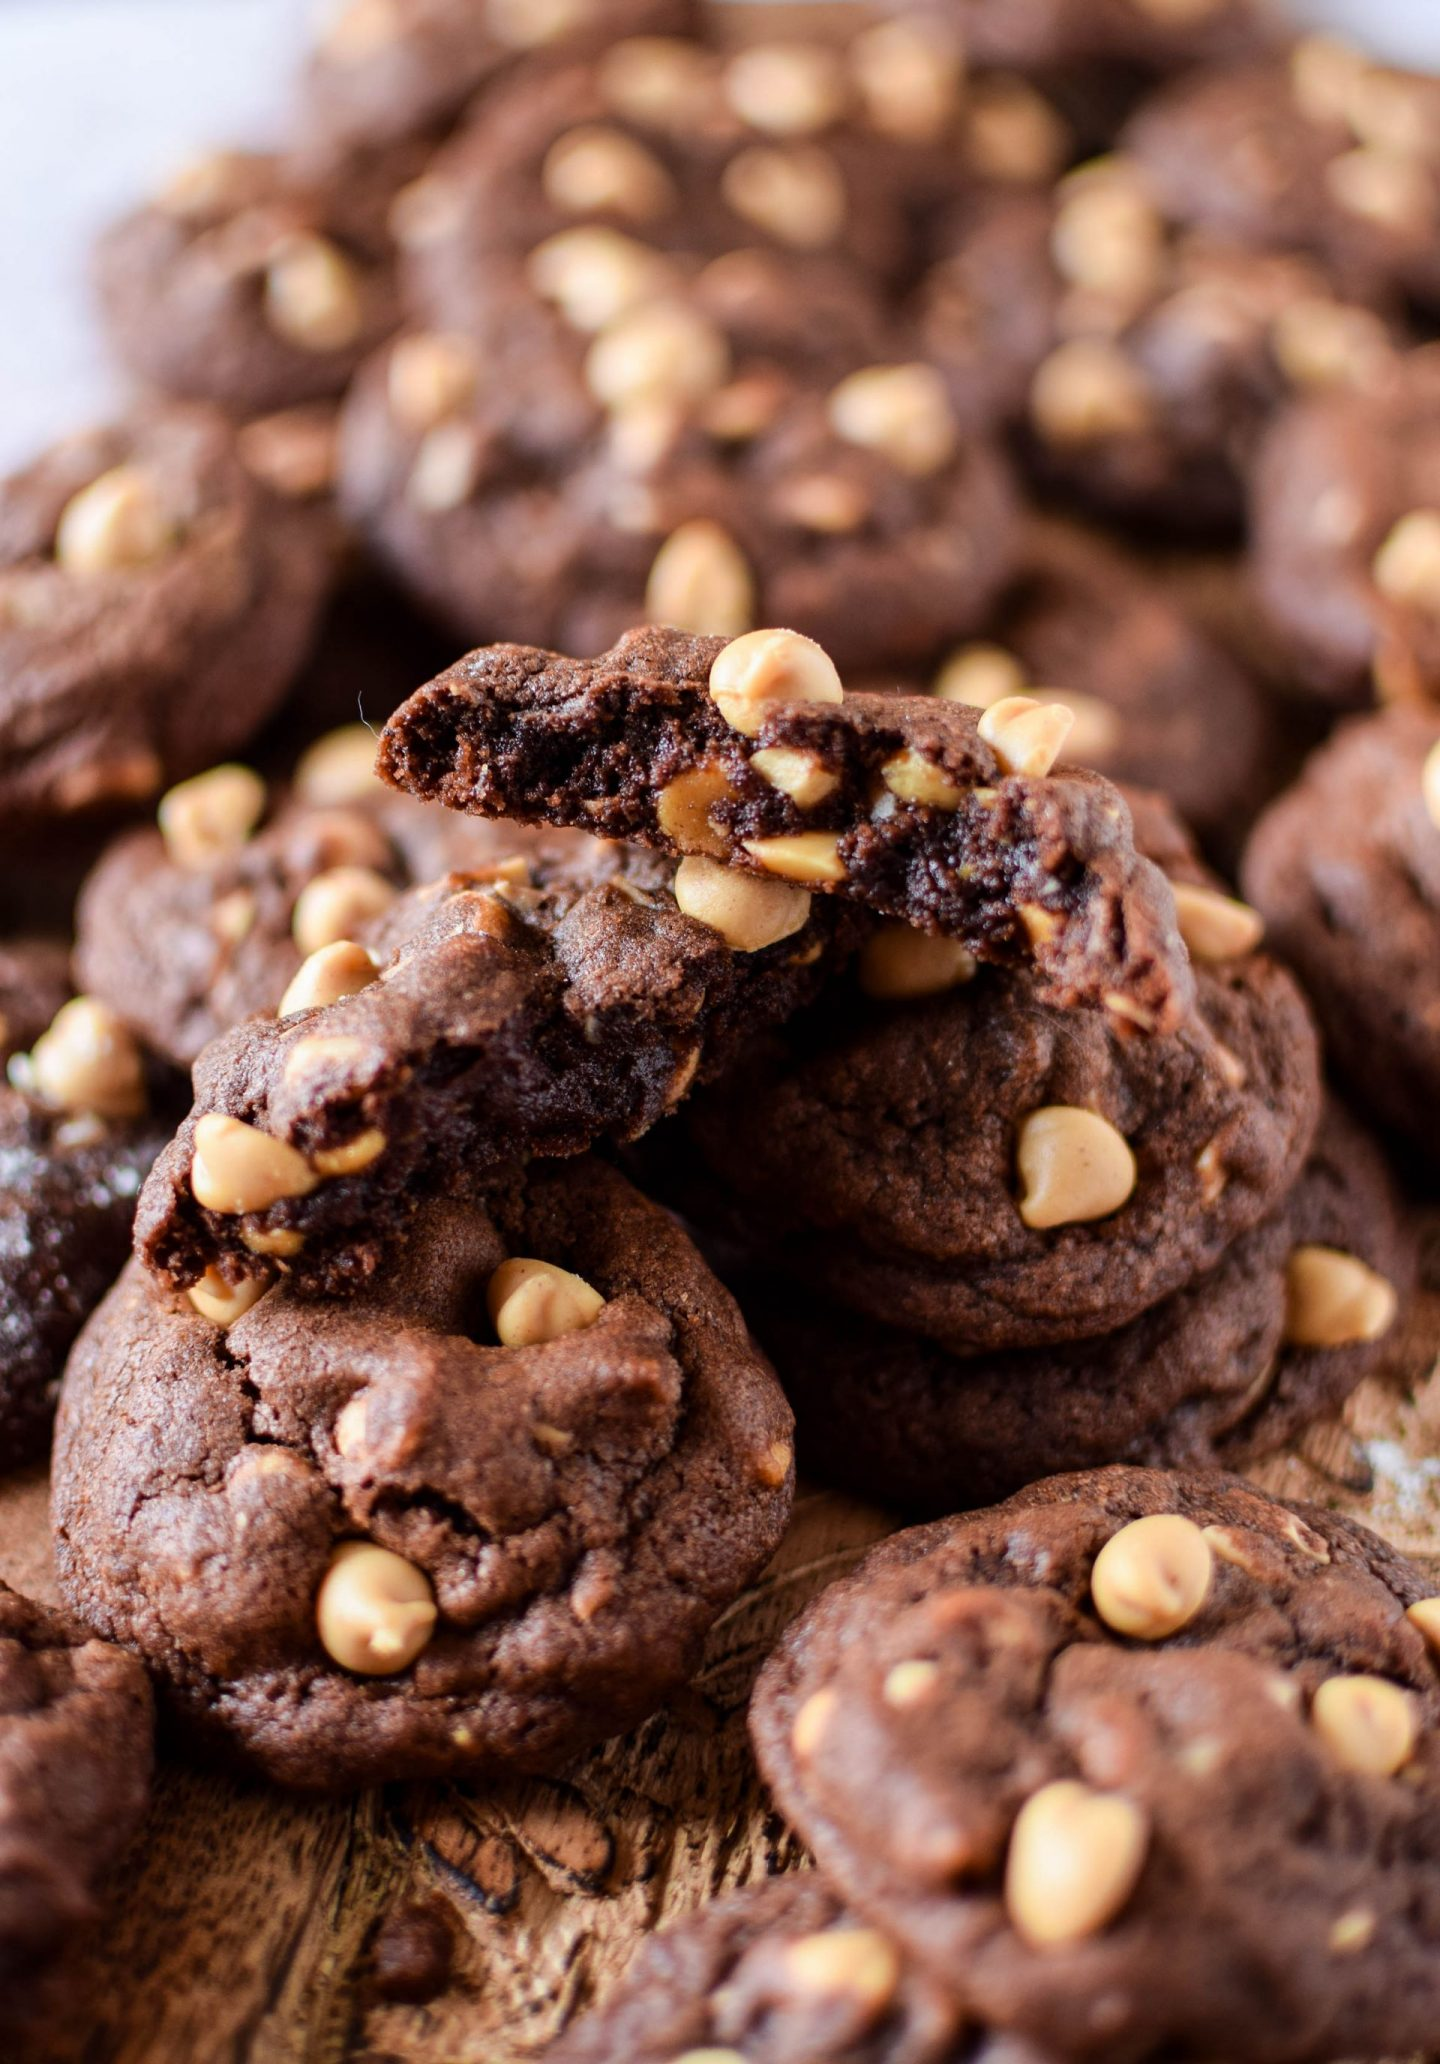 cross section of Chocolate Peanut Butter Cookies